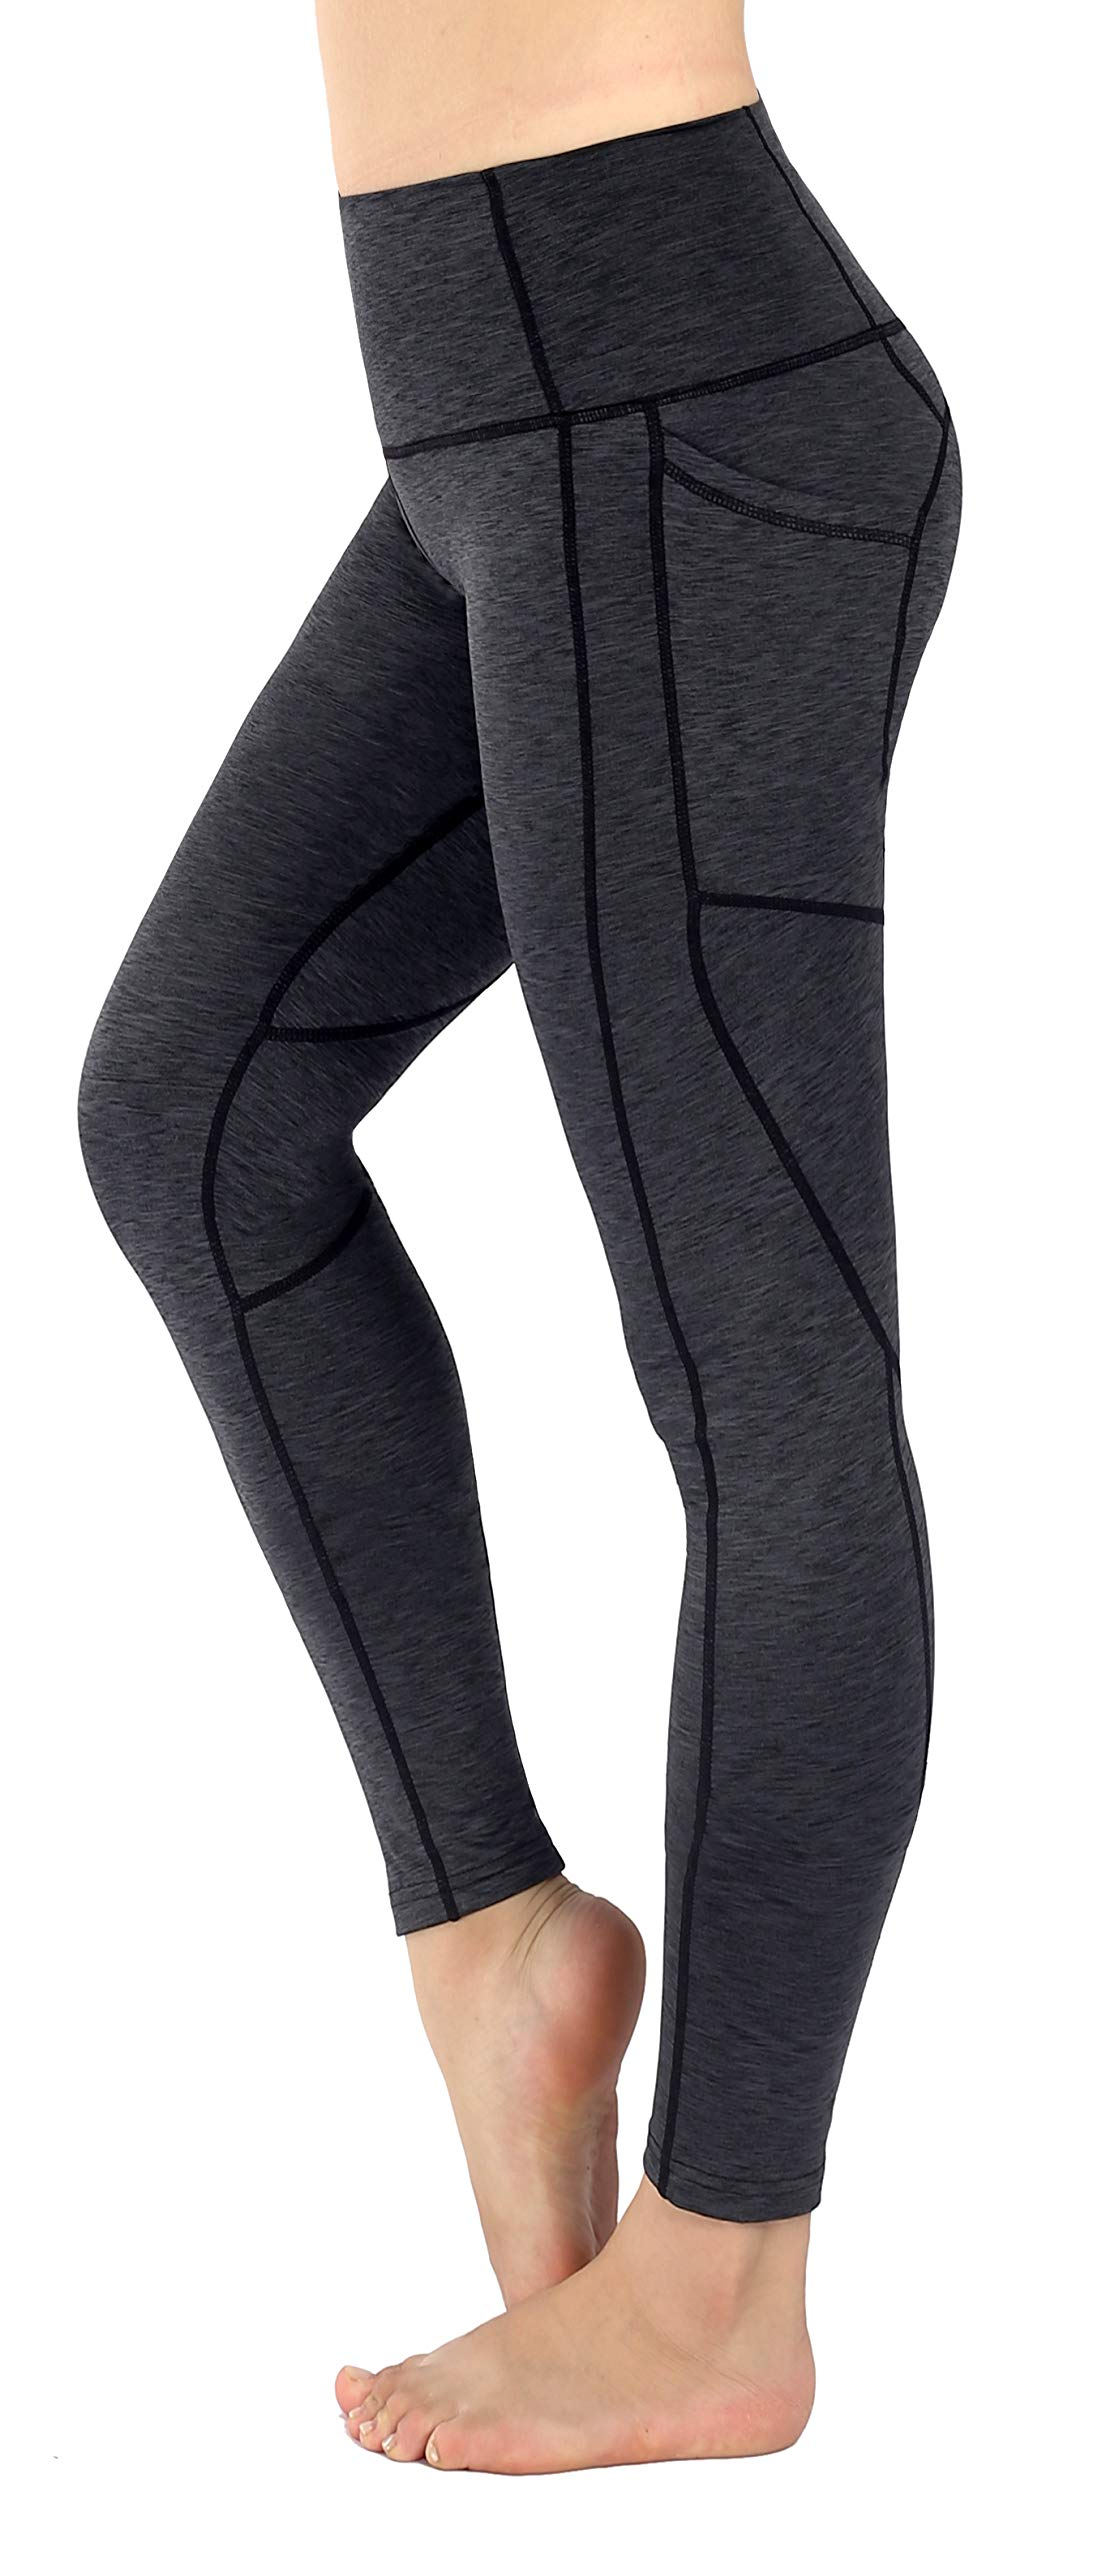 c37f0cf0803e Sugar Pocket Legging de Sport Femme Stretch Yoga Jogging Fitness Running  Taille Haute avec Poche product